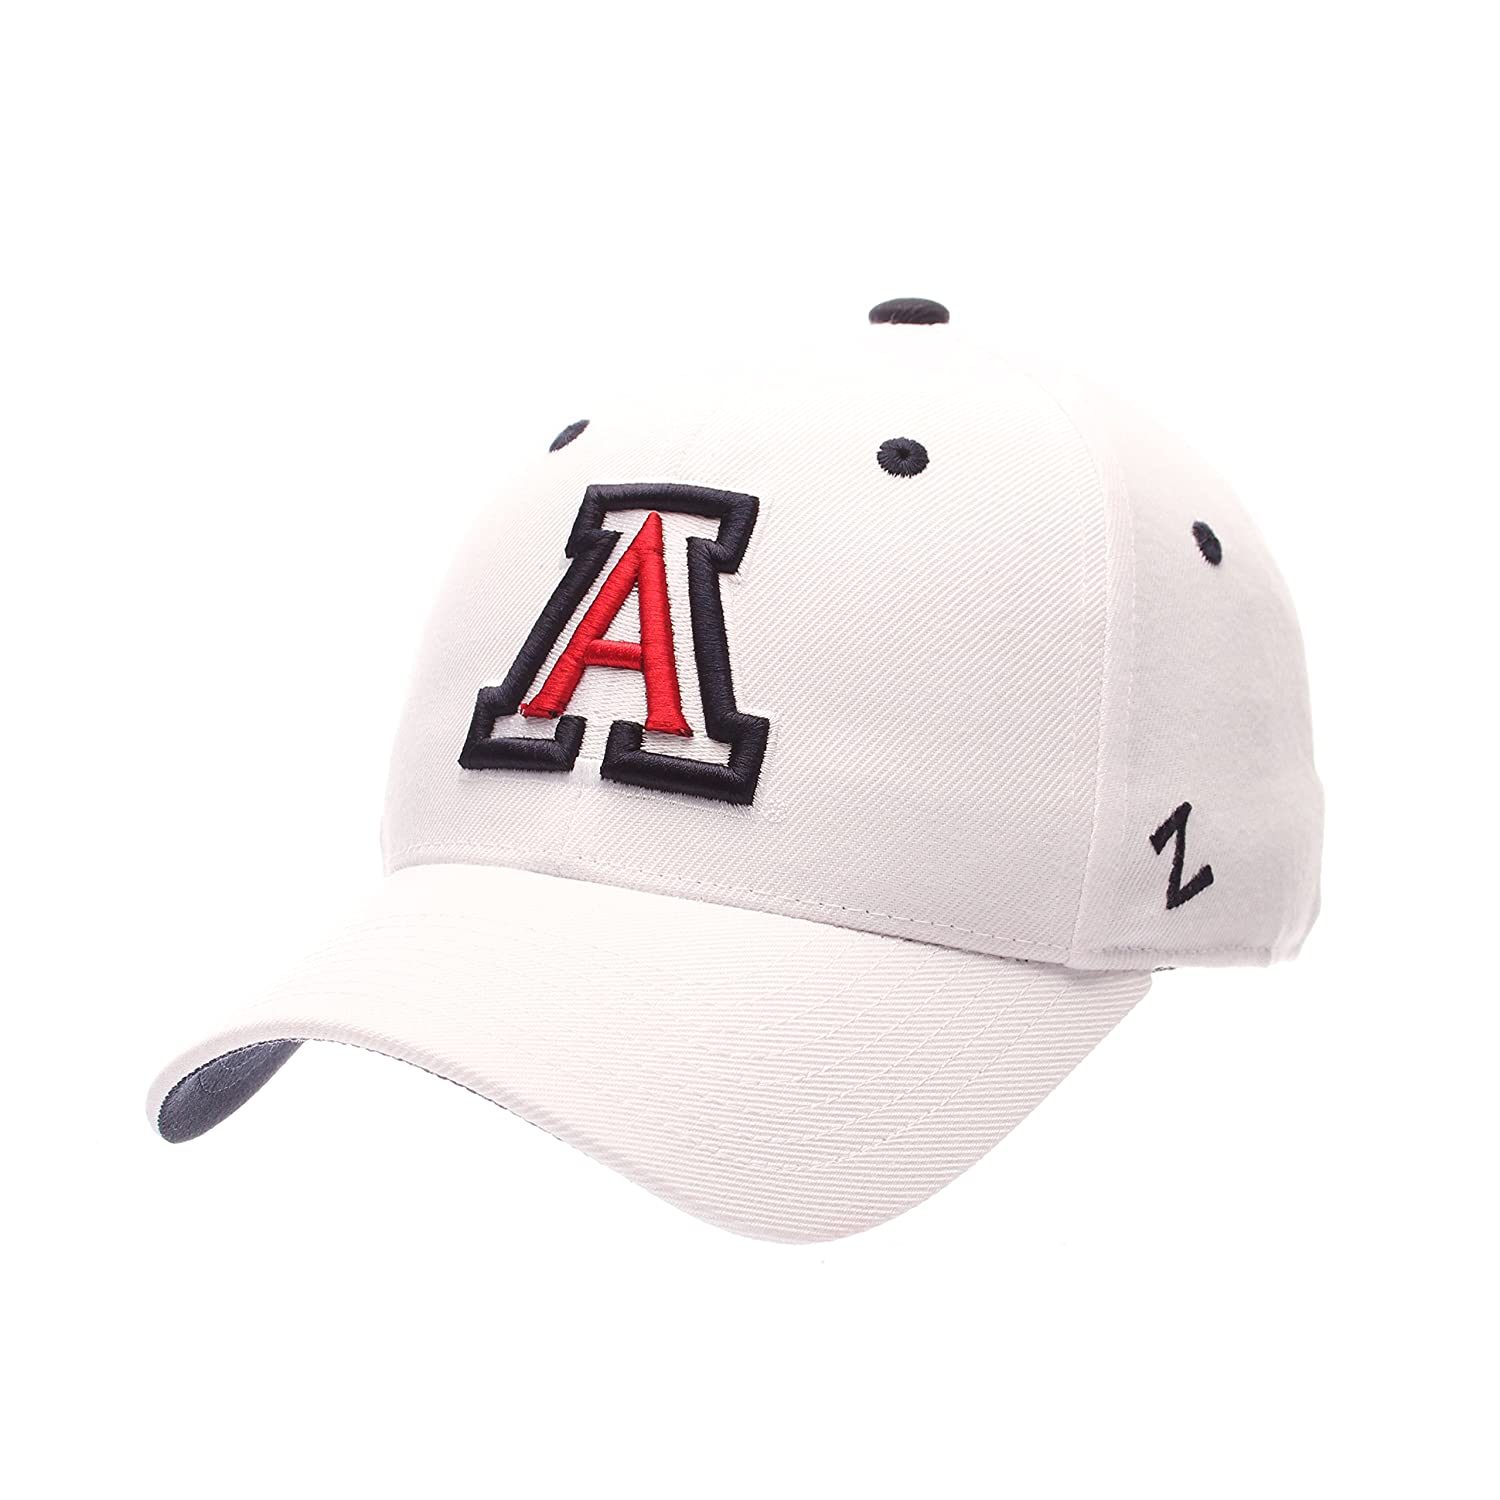 ZephyrメンズArizona Wildcats DH Zwool Fitted Hat – ホワイト SEVN  B01MXLJ0NC